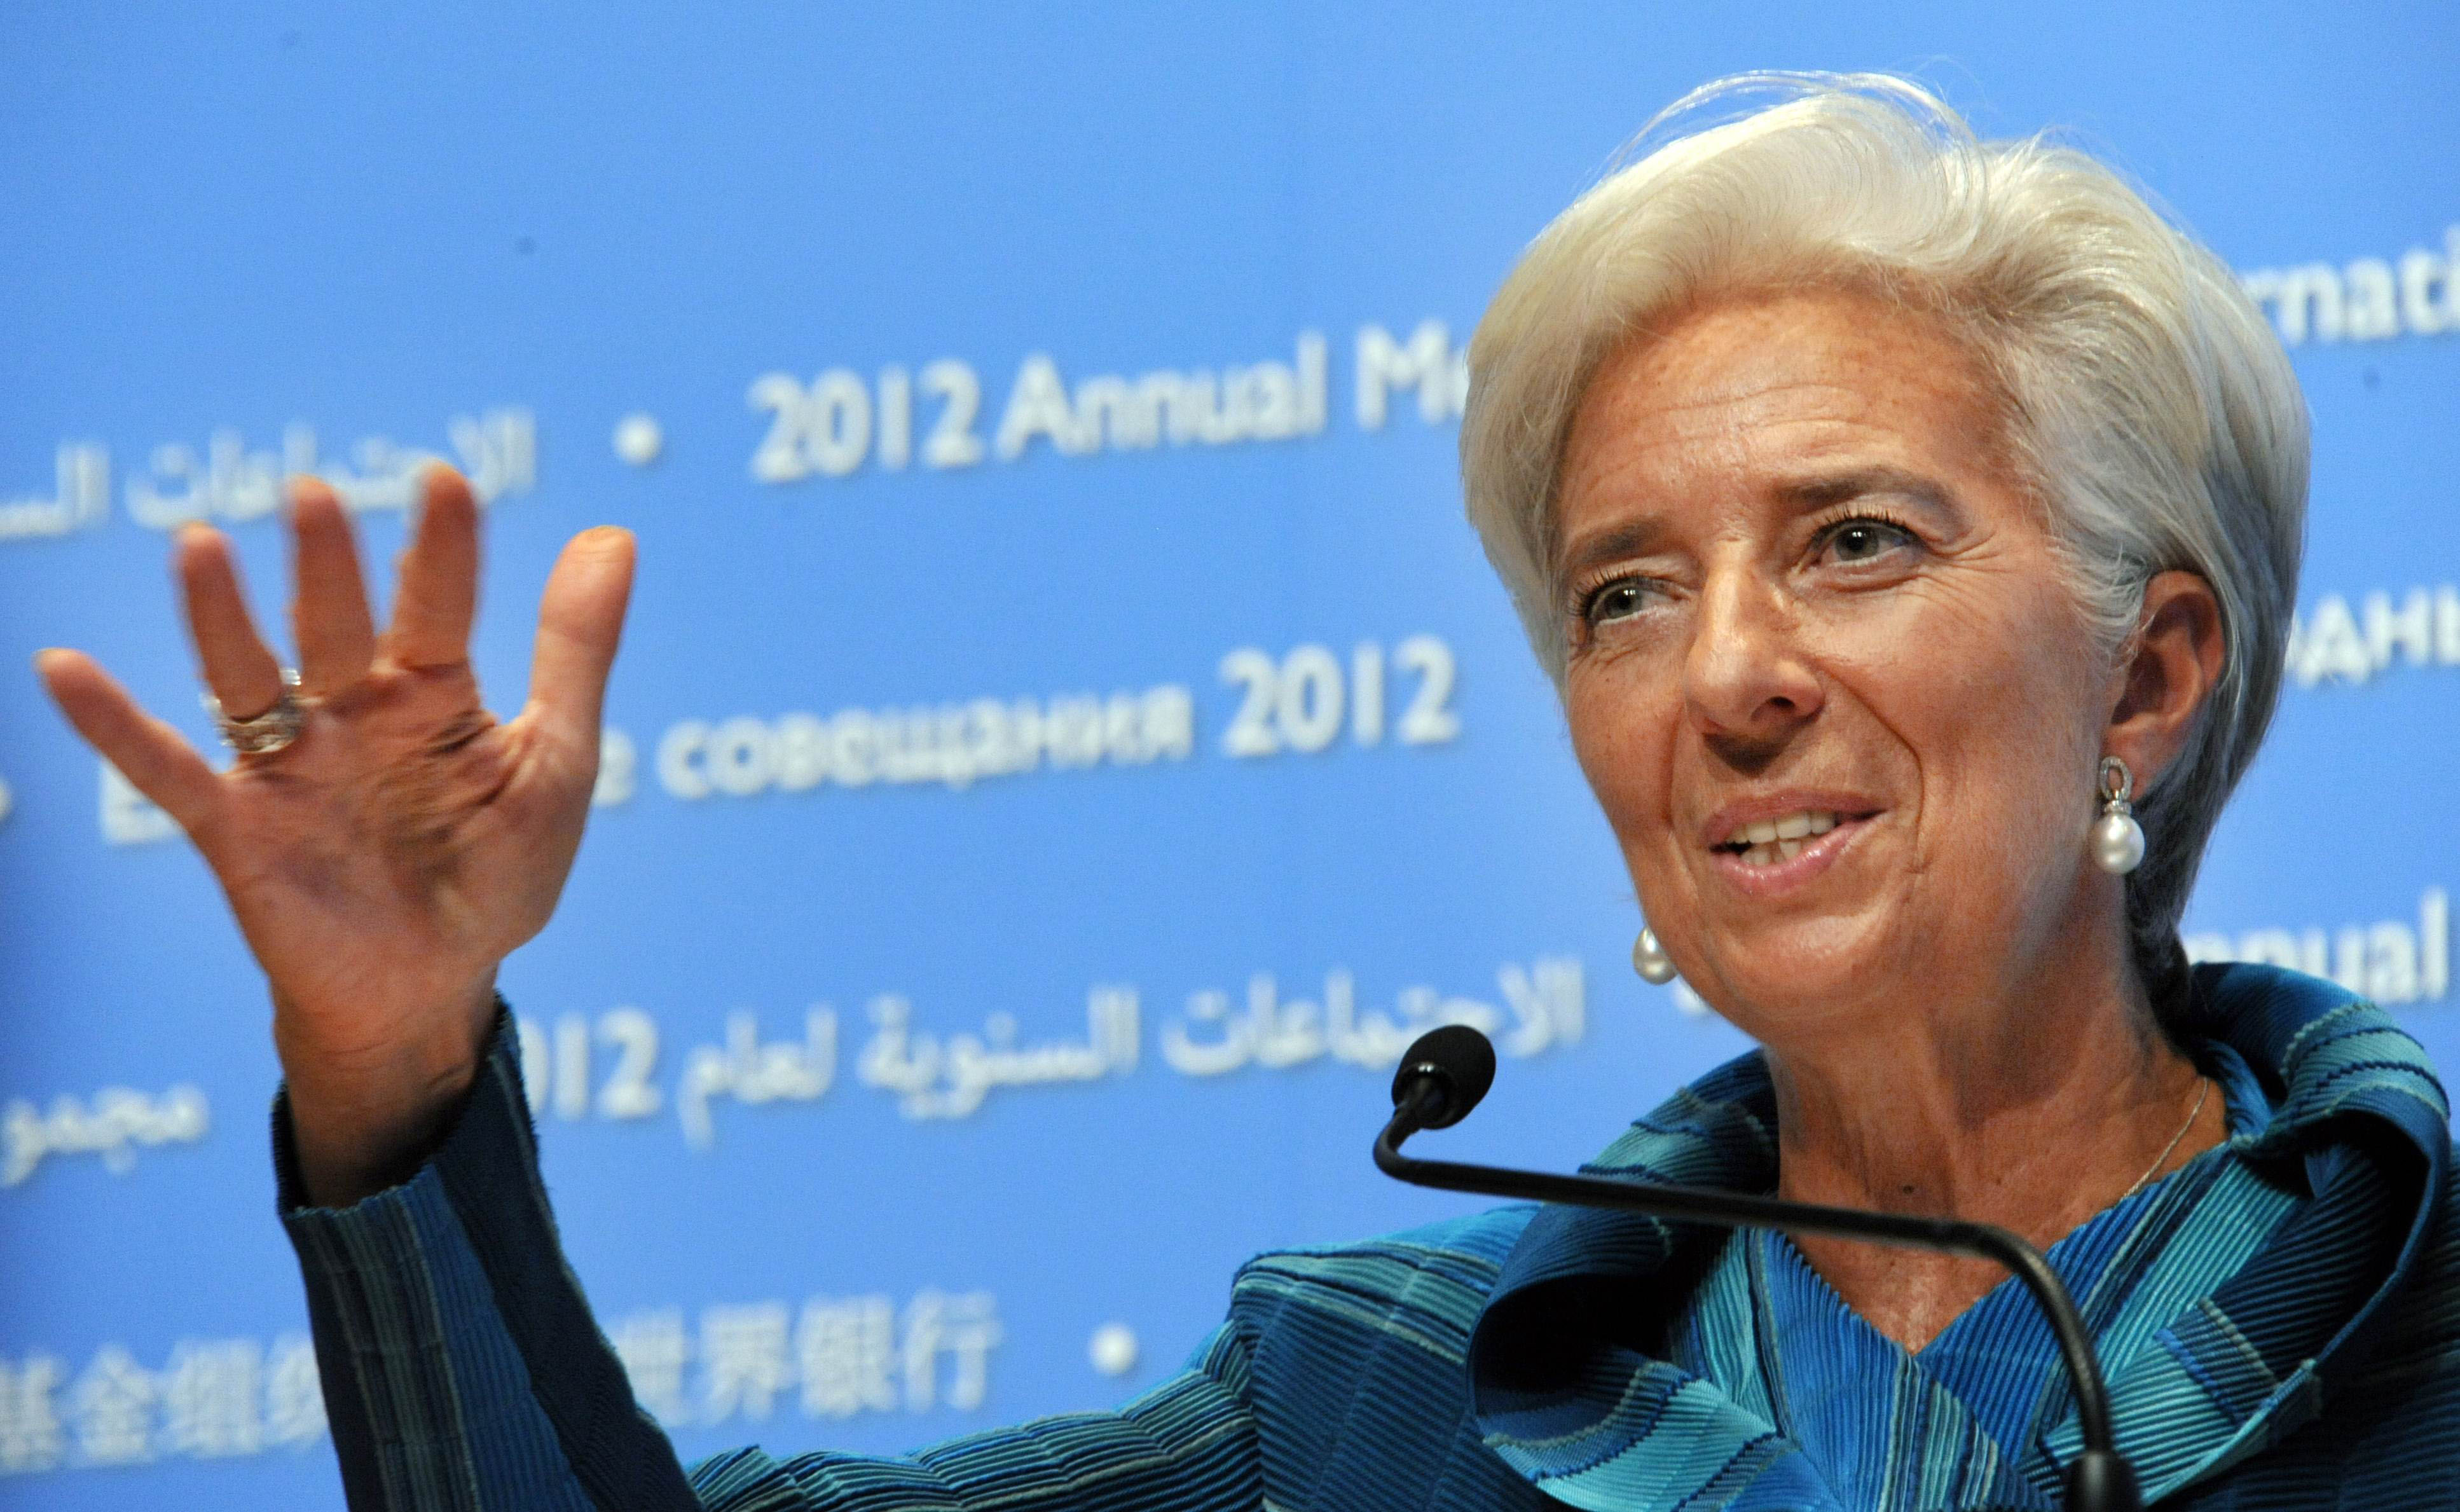 Lagarde raises alarm over debt, job ills